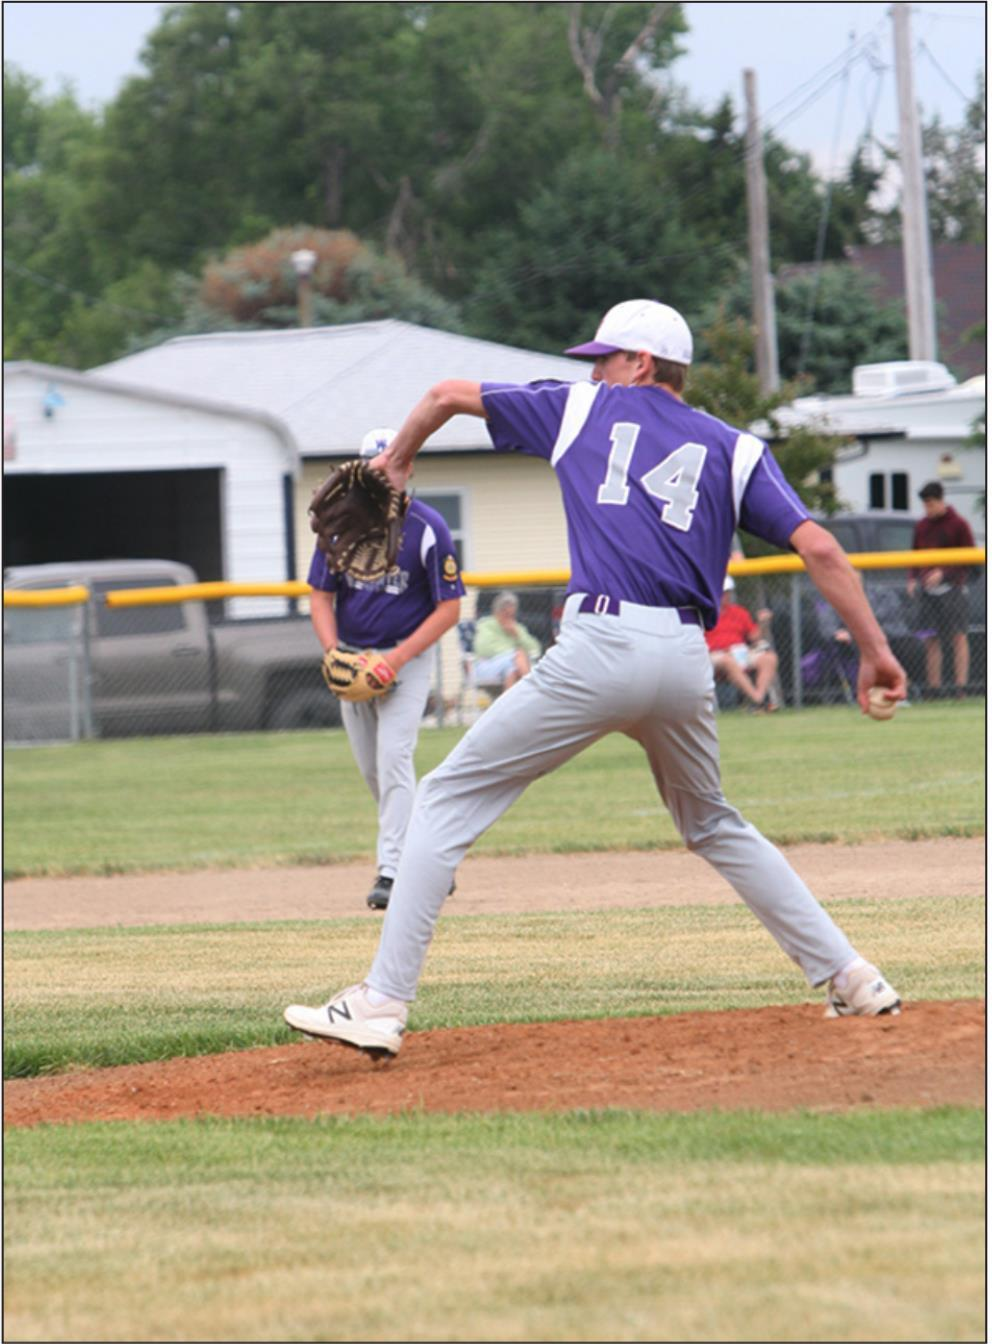 Aiden Graves drove in three runs on his three singles in the win over Minden last week and also pitched quality innings against Shelton/Gibbon. (—photo by Lynn McBride)